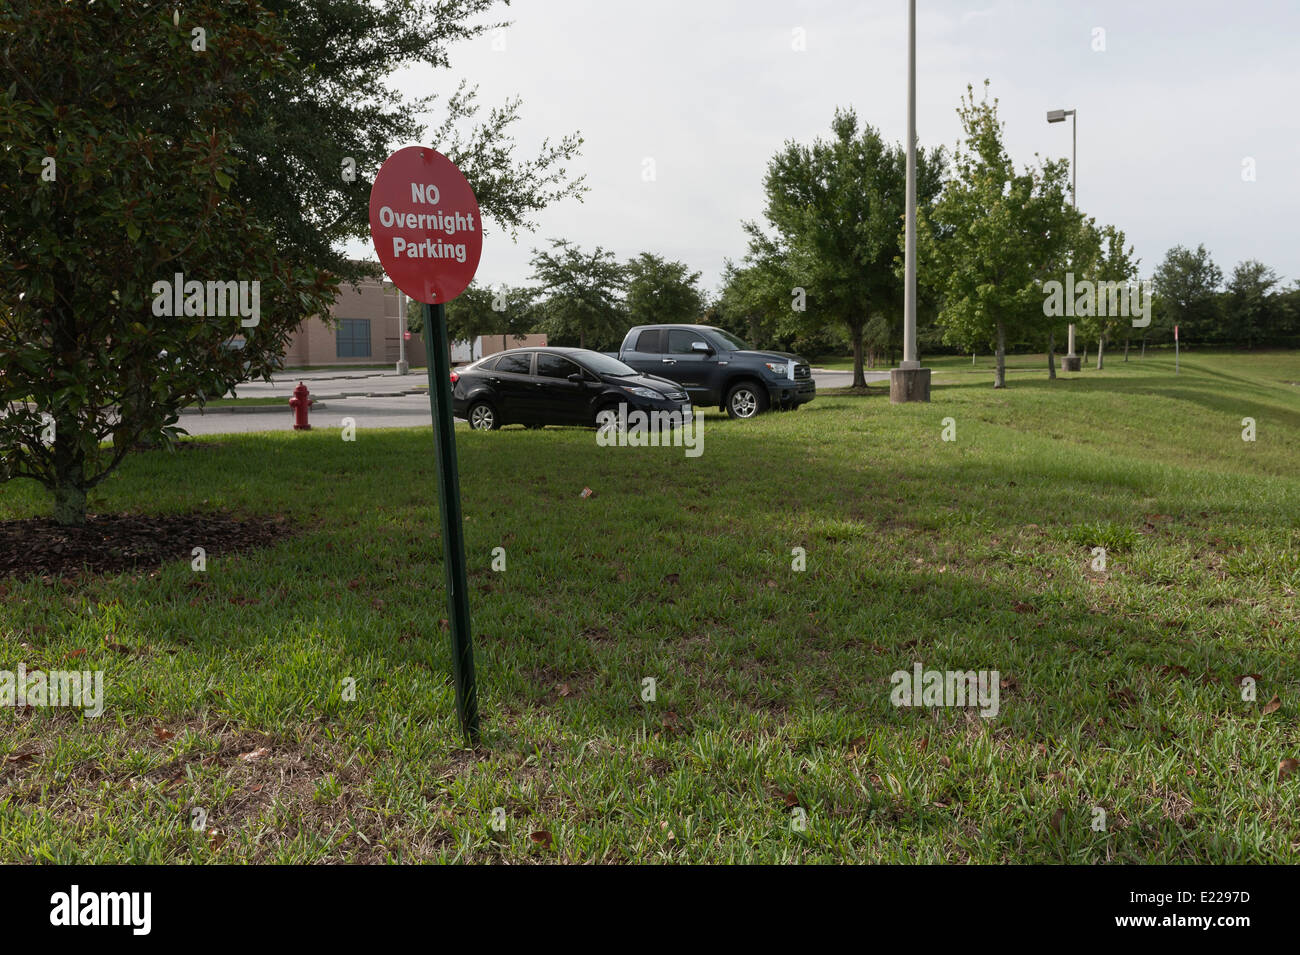 No overnight parking sign located in Central Florida USA Stock Photo